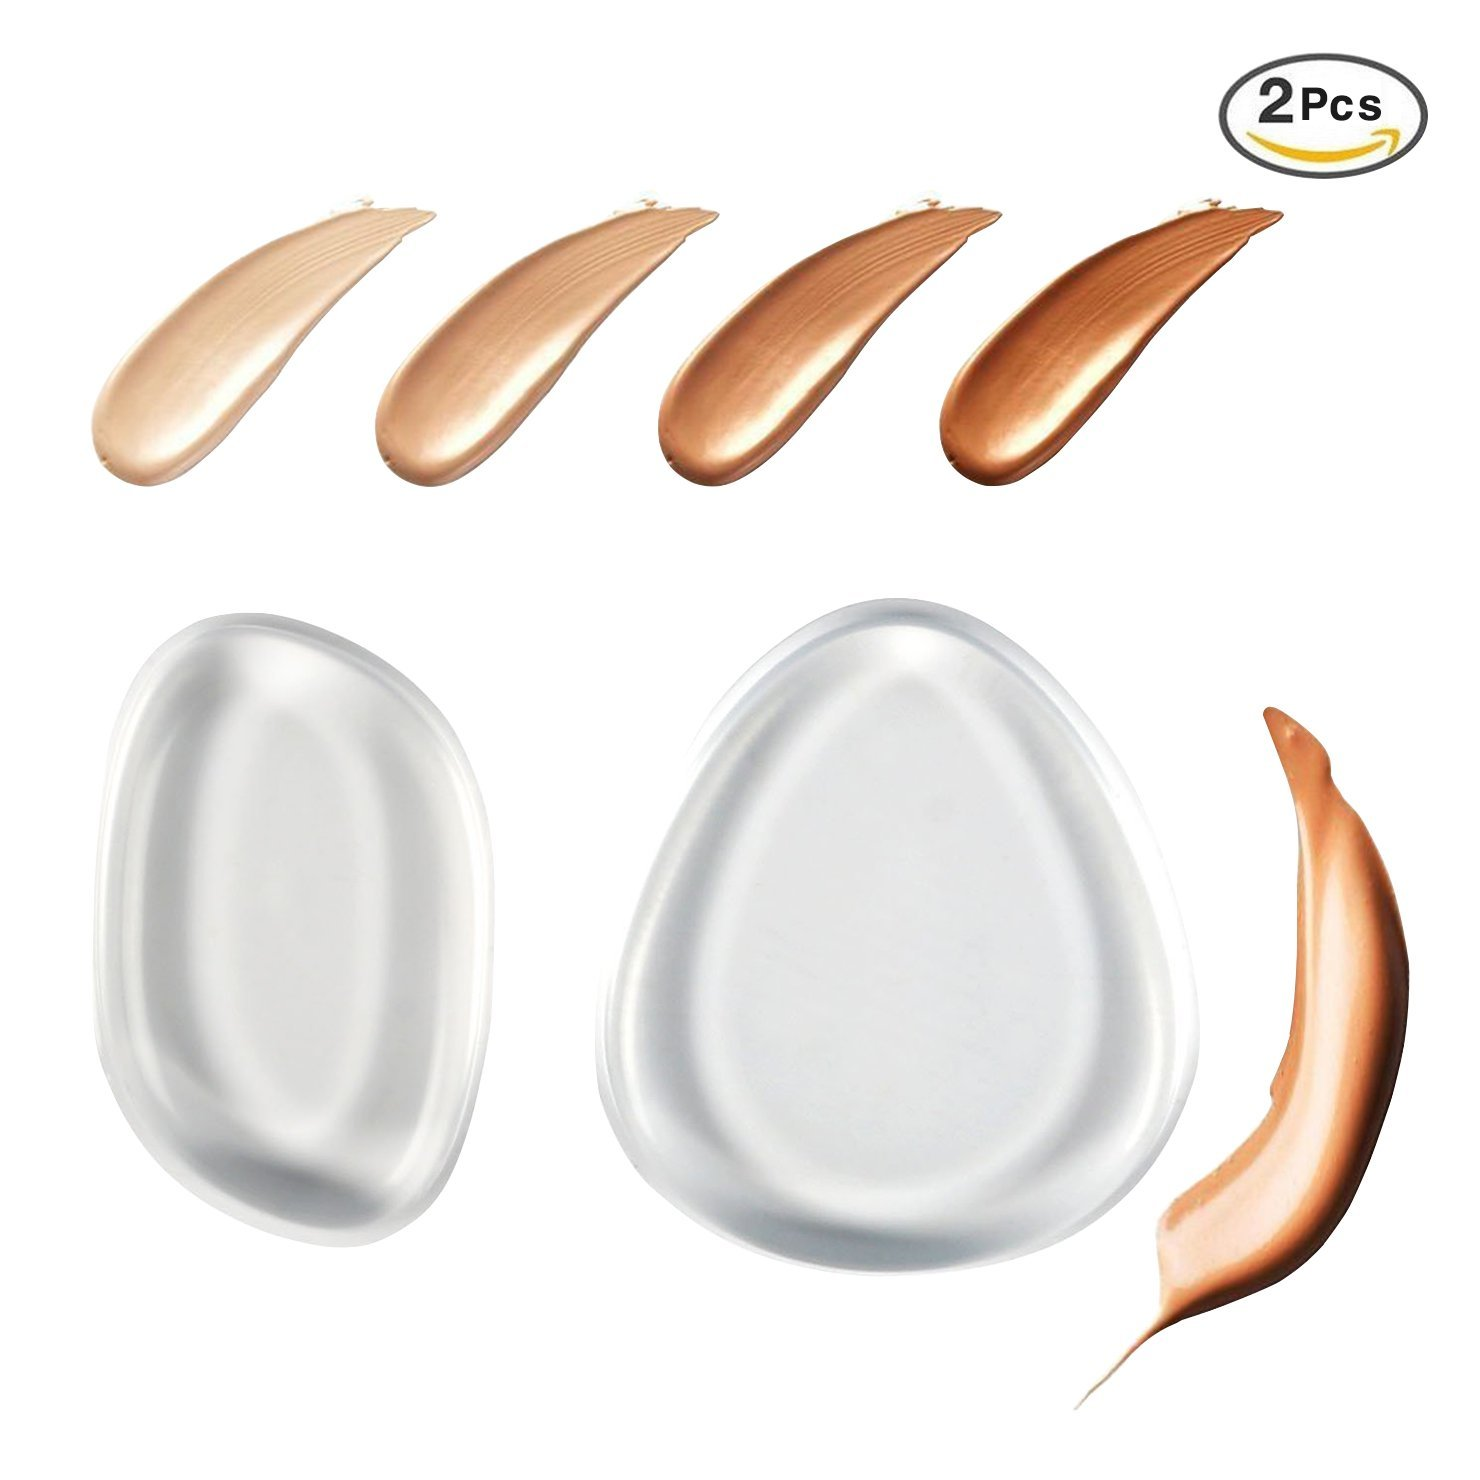 Beauty Essentials Cheap Sale Silicone Sponge Makeup Puff Liquid Bb Cc Cream Makeup Puff Foundation Base Cosmetics Clear Silisponge Silicone Gel Sponge Puffs